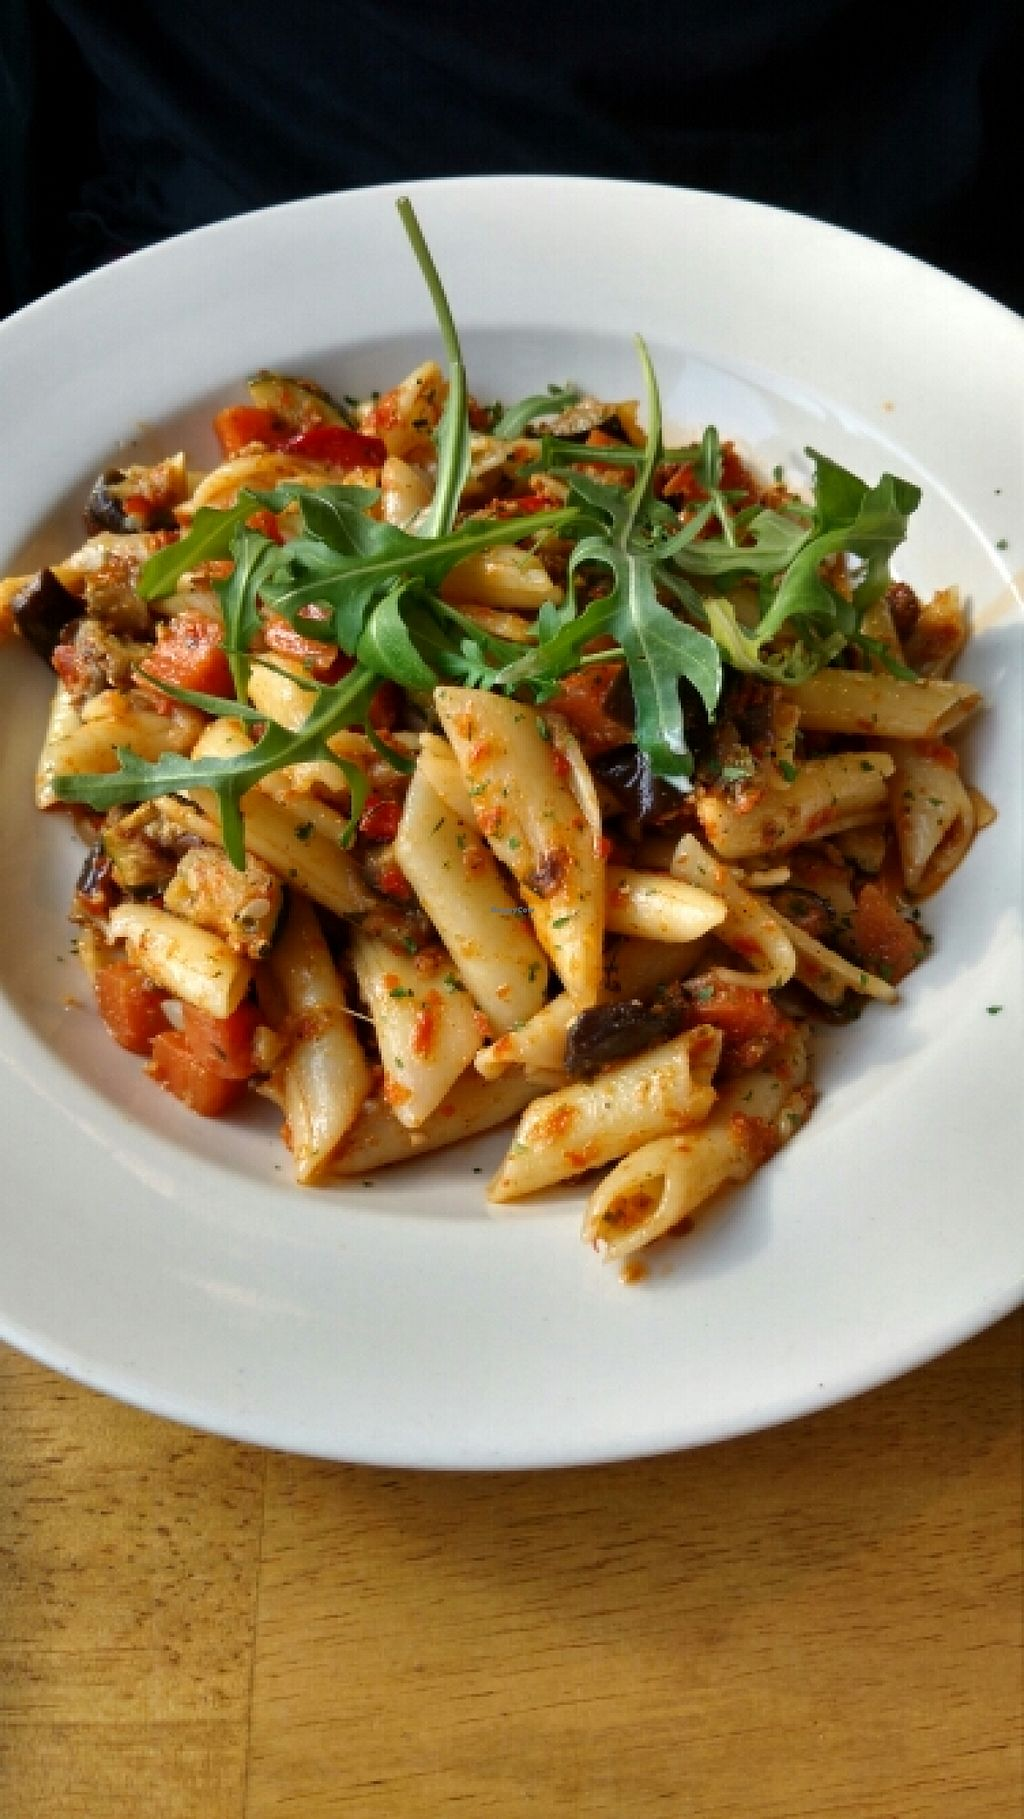 """Photo of Art Cafe  by <a href=""""/members/profile/katupiry"""">katupiry</a> <br/>vegan pasta <br/> March 25, 2016  - <a href='/contact/abuse/image/45953/141263'>Report</a>"""